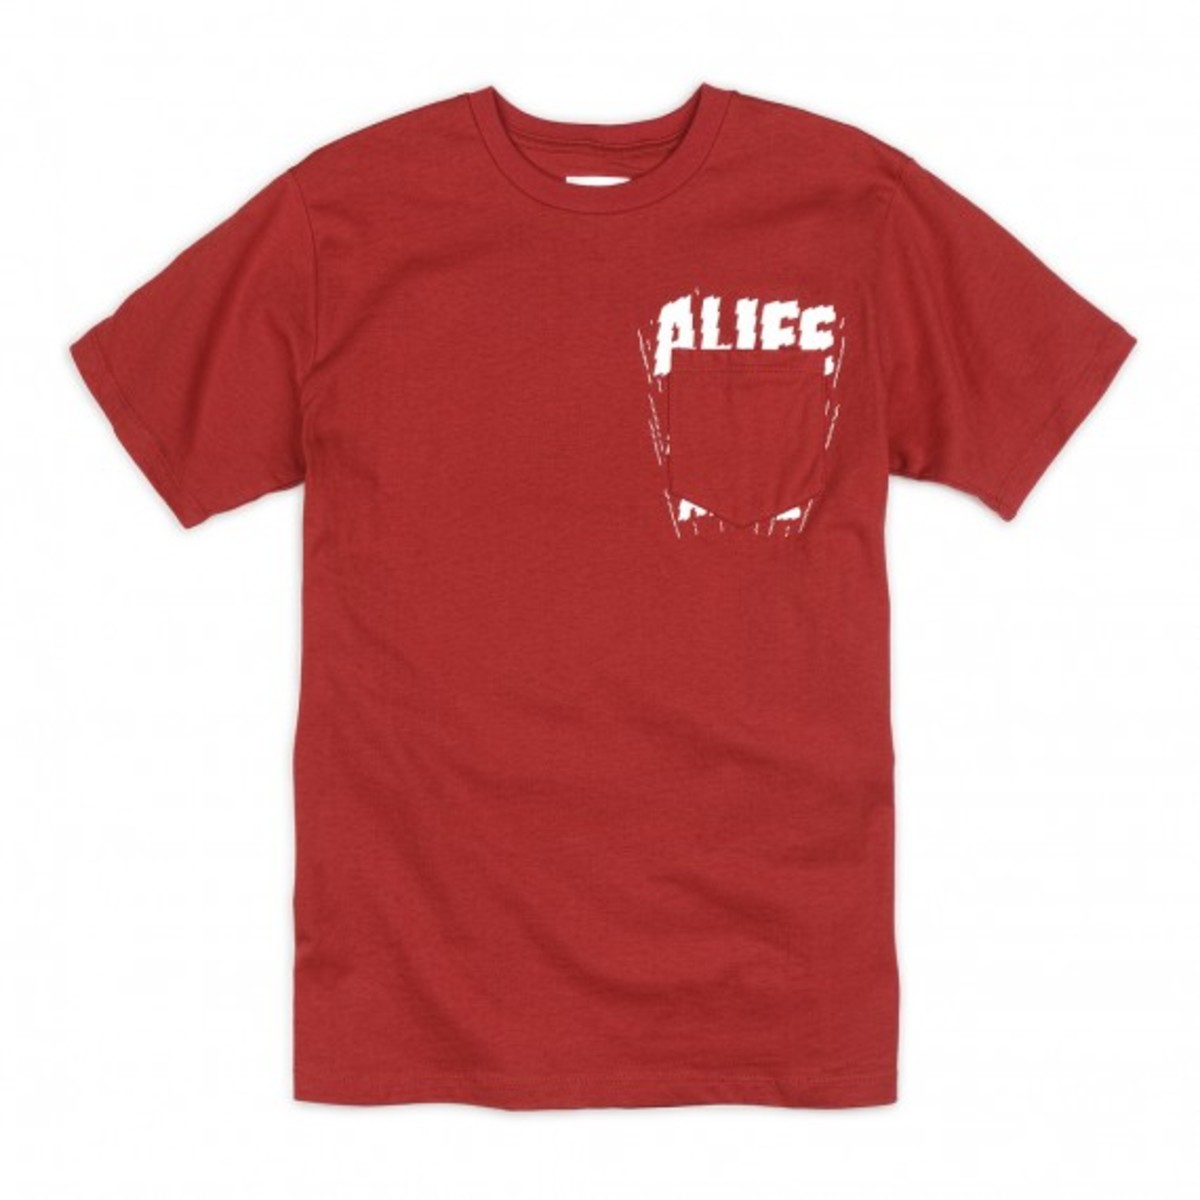 alife-tshirts-accessories-fall-2011-34